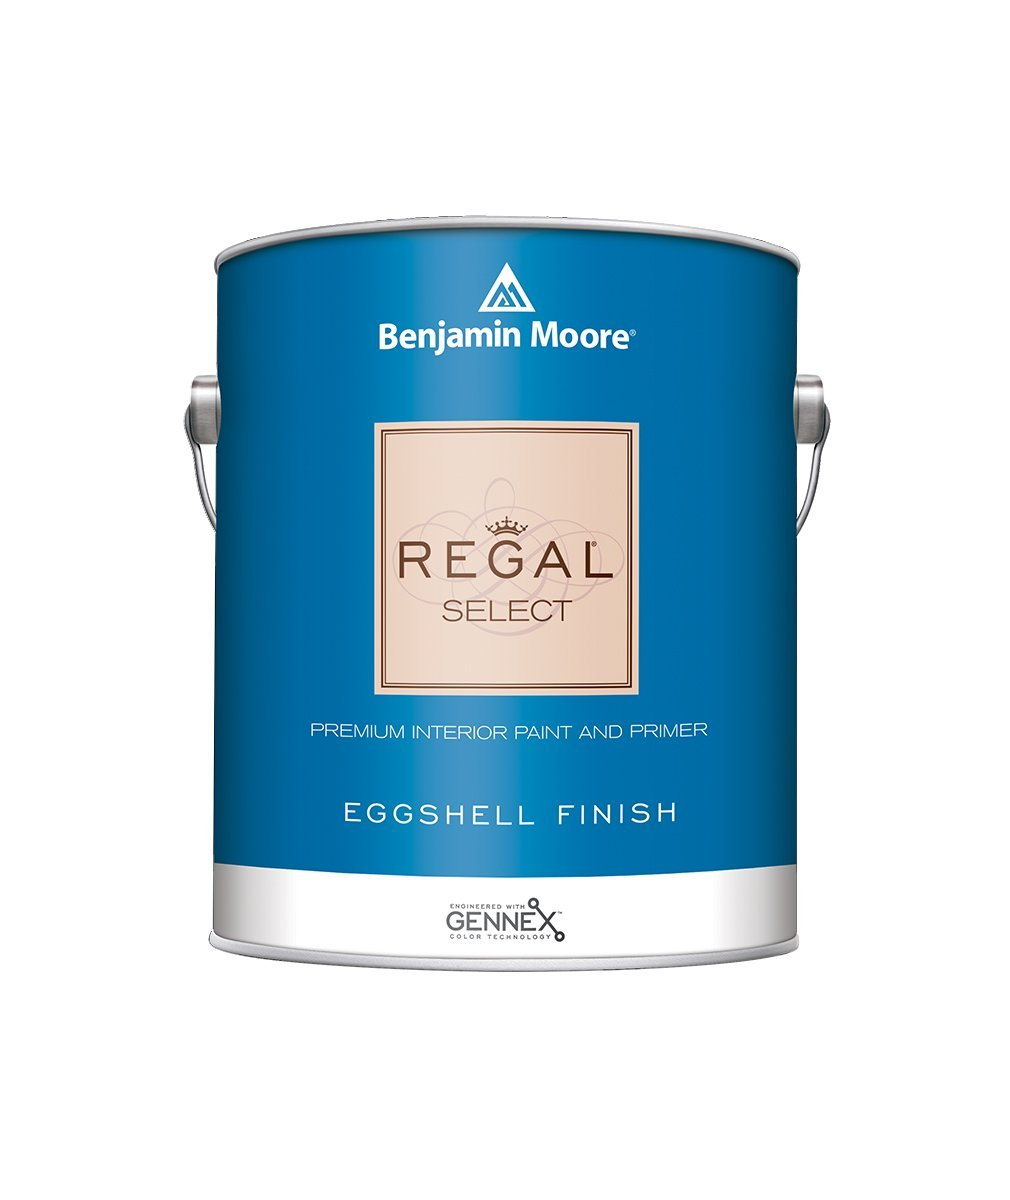 Benjamin Moore Regal Select Eggshell Paint available at Regal Paint Centers.